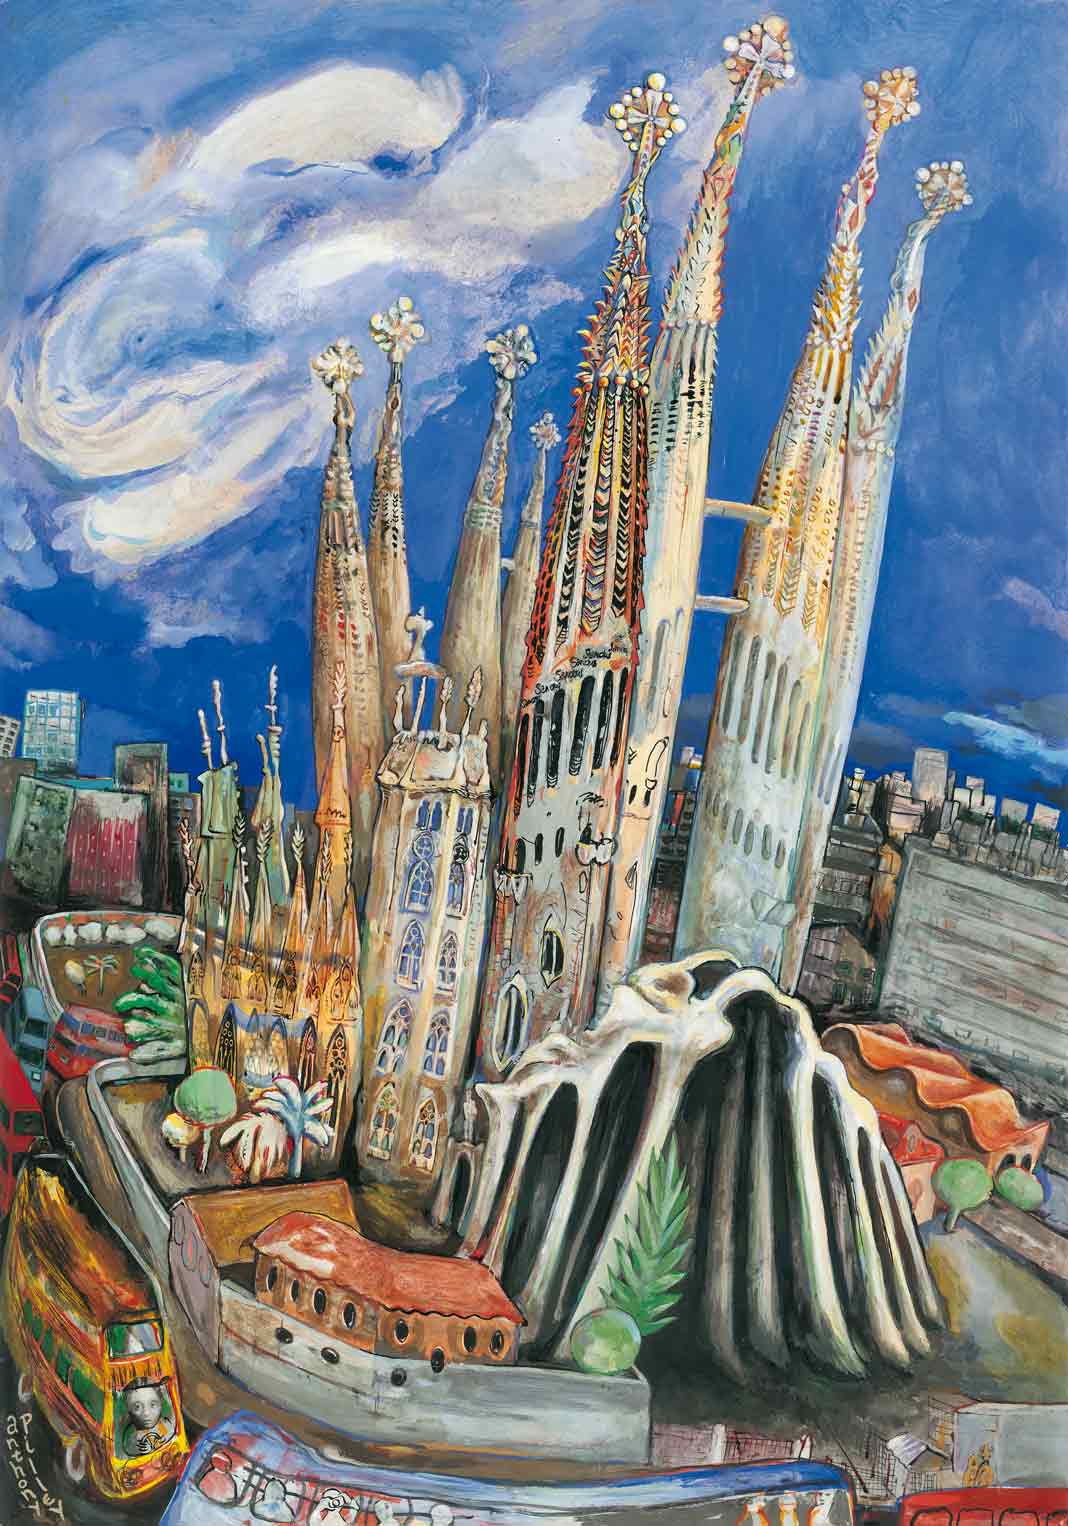 Poster, 'La Sagrada Familia' by Anthony Pilley